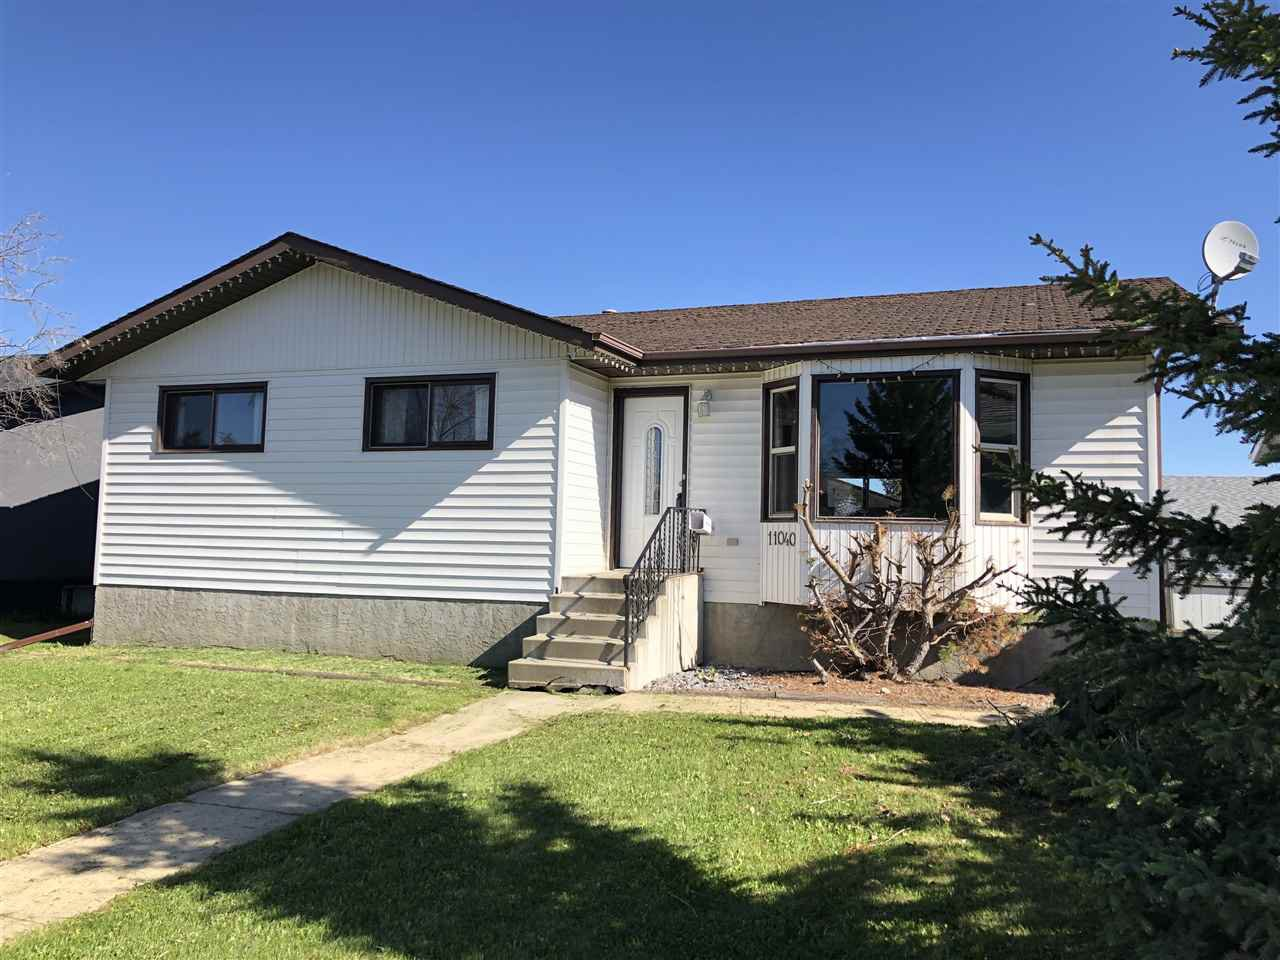 Main Photo: 11040 104 Street: Westlock House for sale : MLS®# E4199204